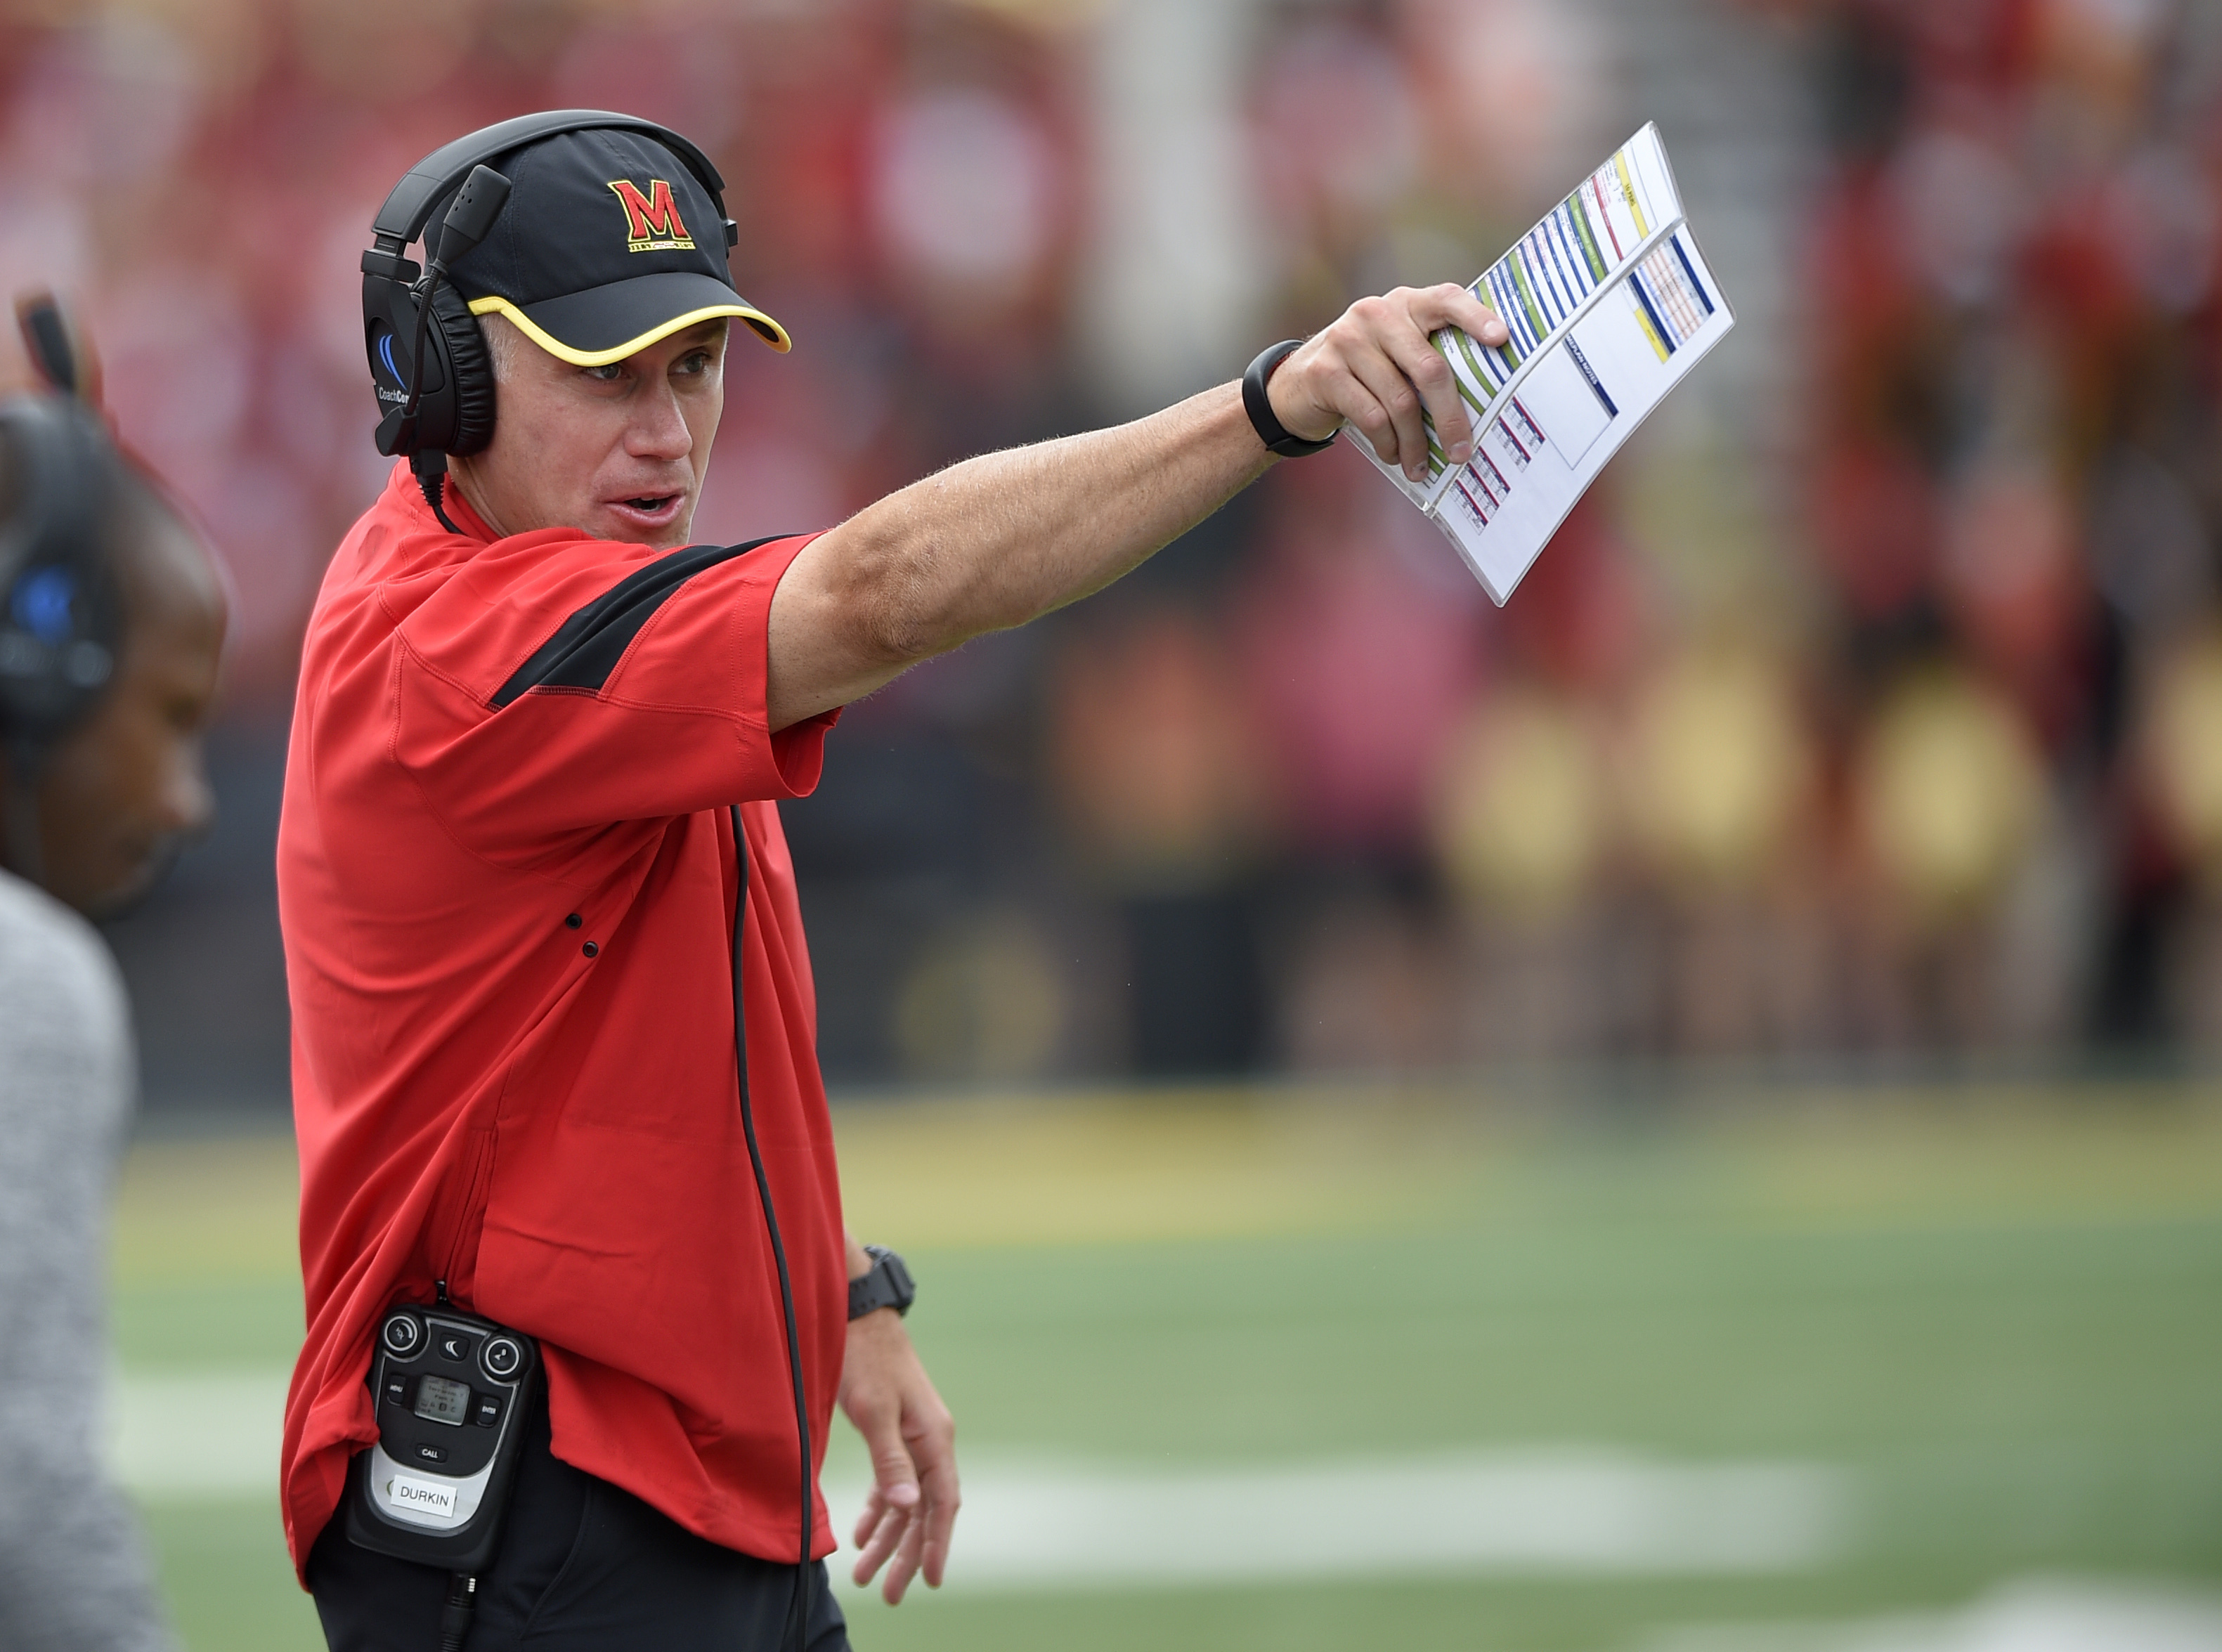 FILE - In this Sept. 3, 2016, file photo, Maryland head coach DJ Durkin gestures during the second half of an NCAA football game against Howard in College Park, Md. Though first-year coach DJ Durkin is known for his defensive prowess, Maryland is unbeaten